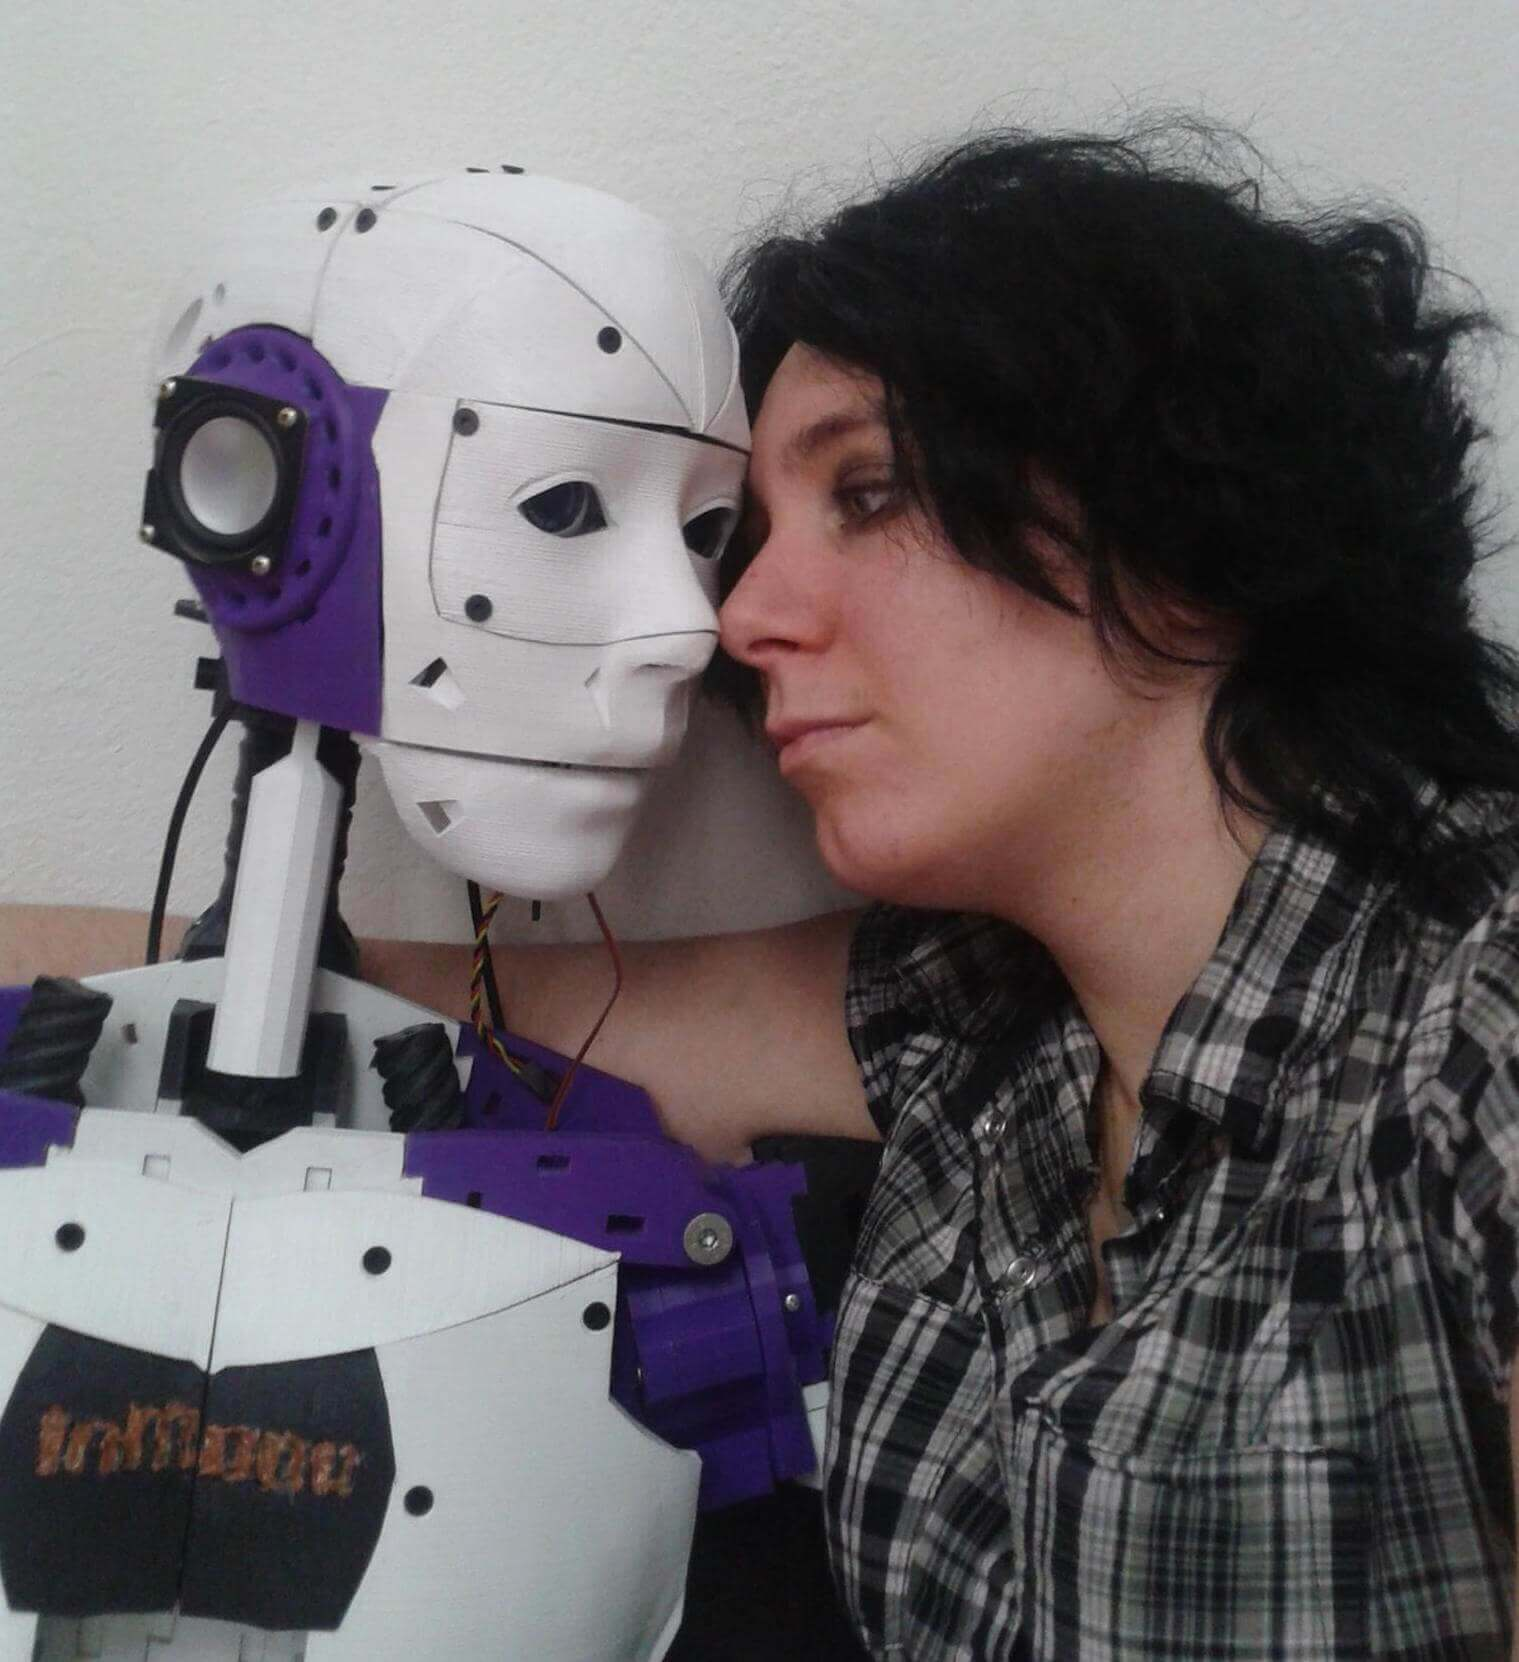 InMoovator and Lilly are a robot-human couple seeking right to marry.